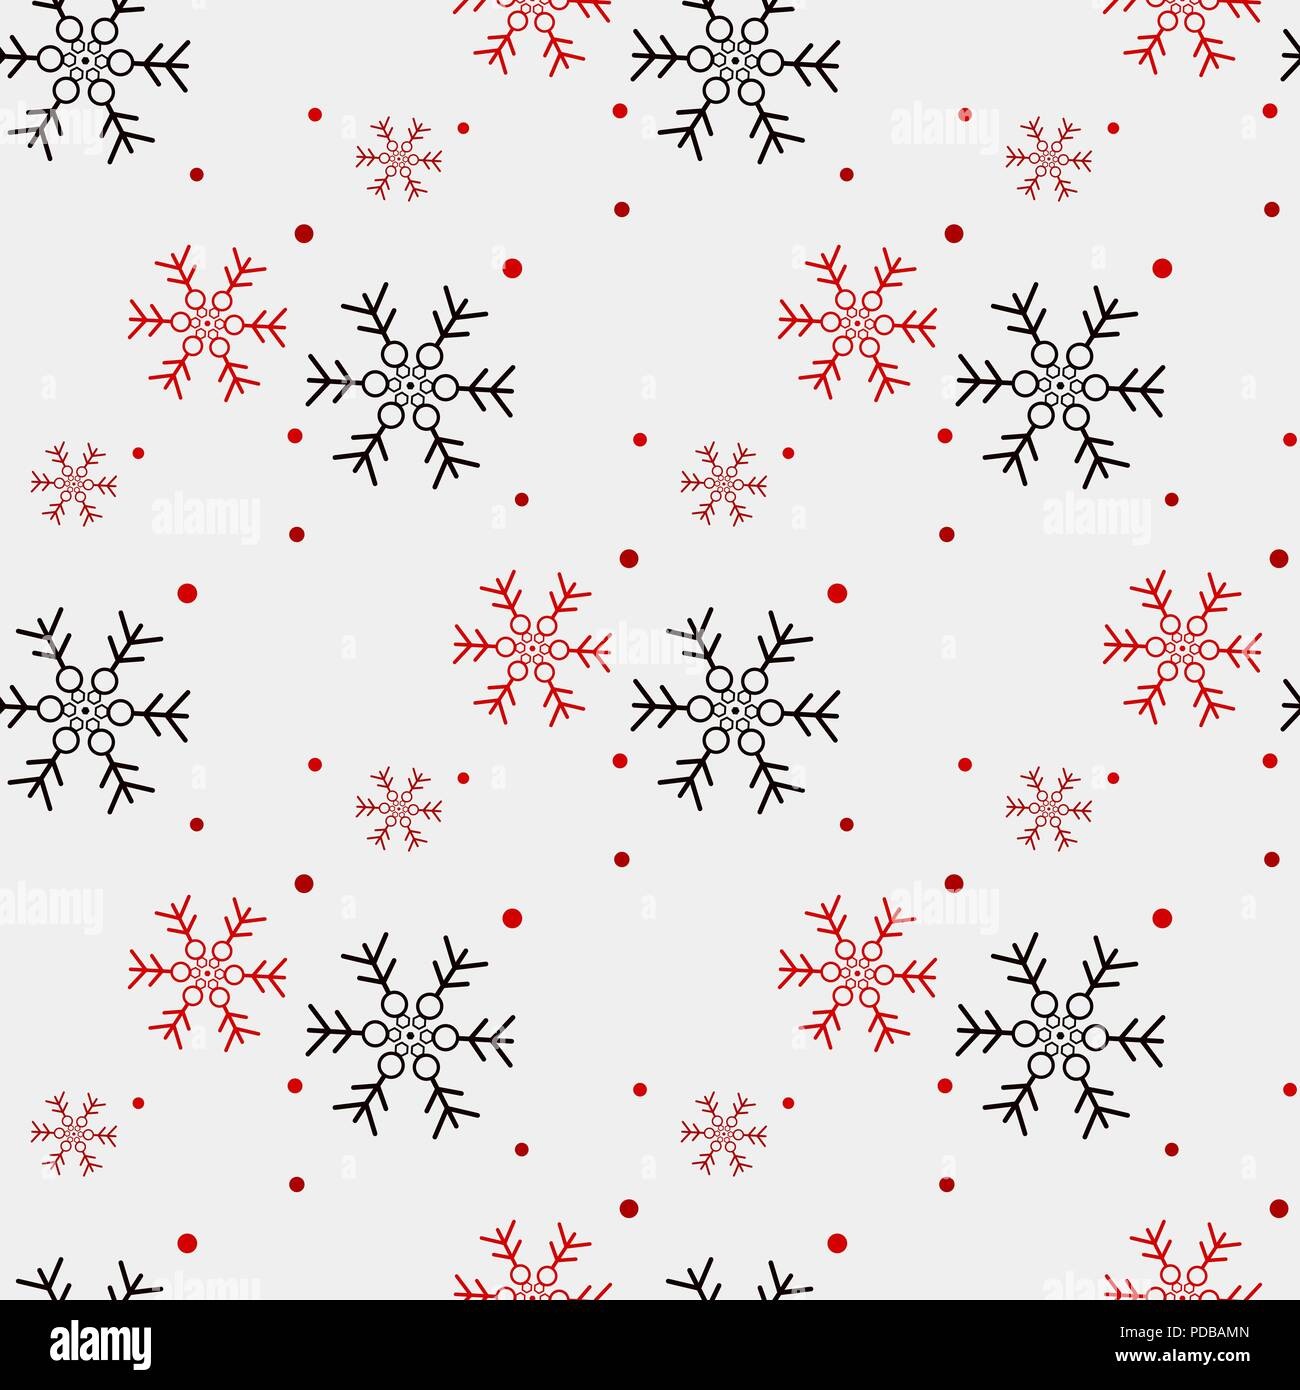 red and black snowflake seamless pattern snow on white background abstract wallpaper wrapping decoration symbol winter merry christmas holiday h PDBAMN